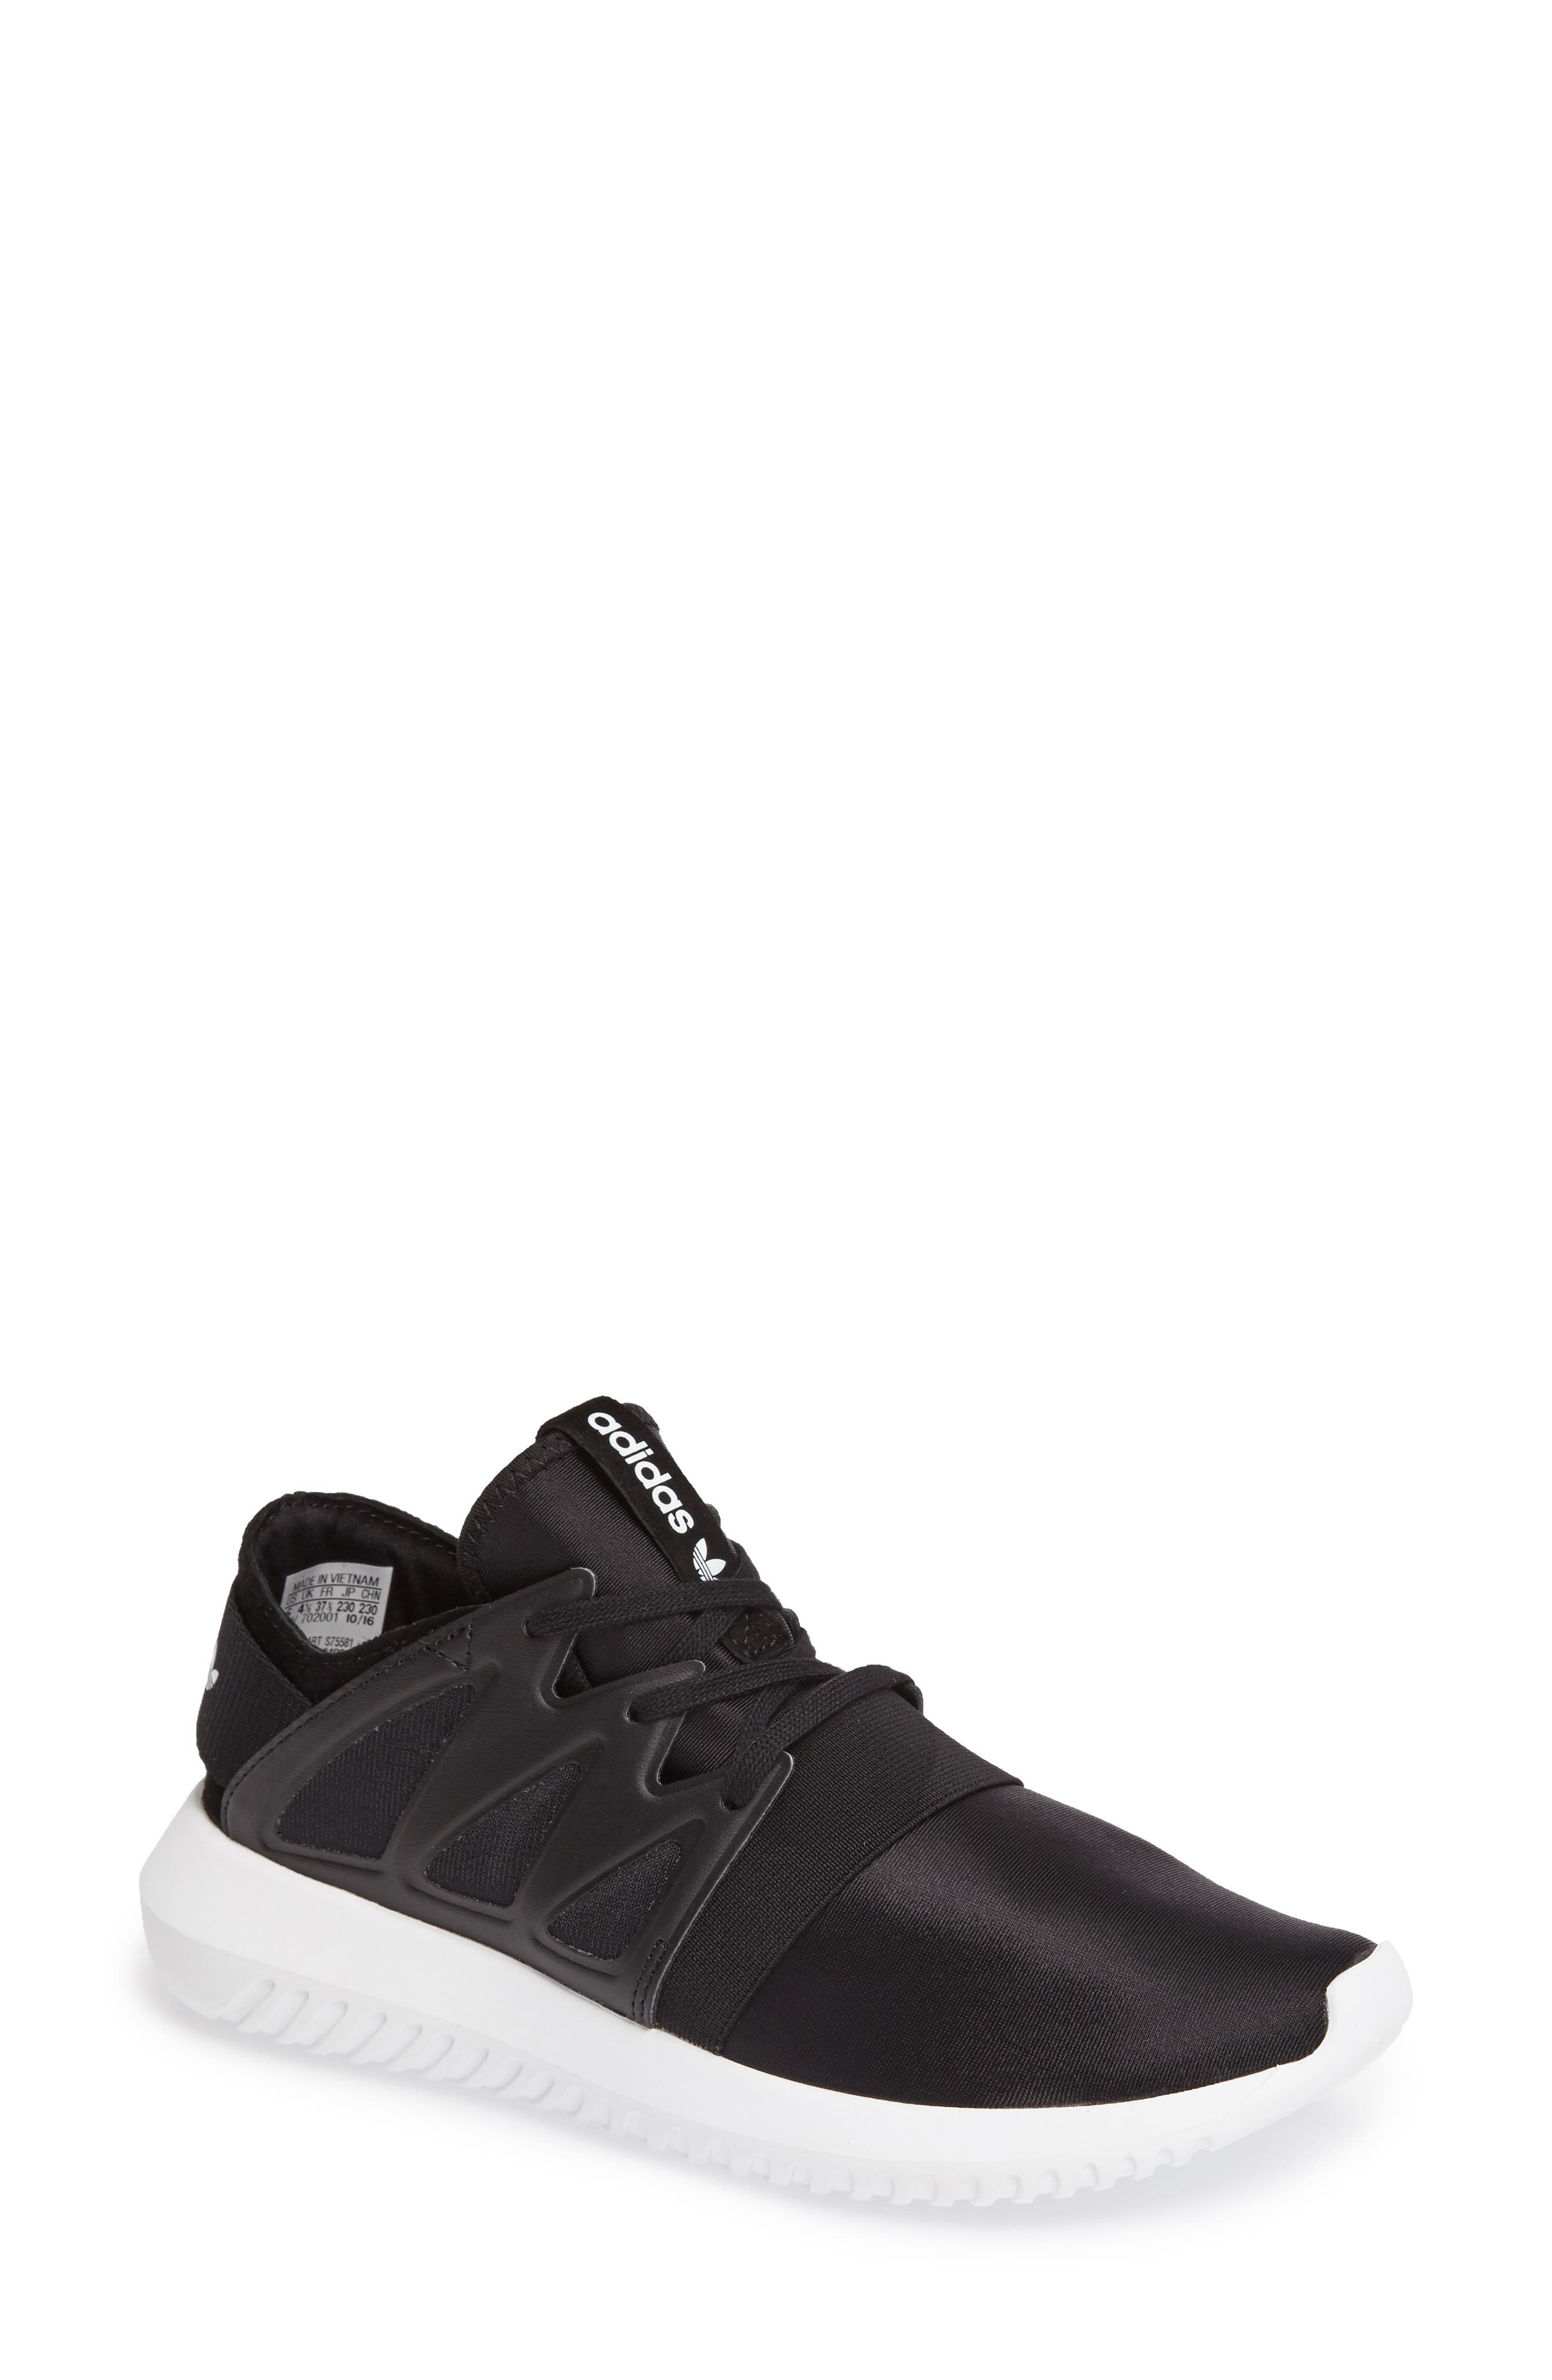 ADIDAS 'Tubular Viral' Sneaker, Main, color, 002